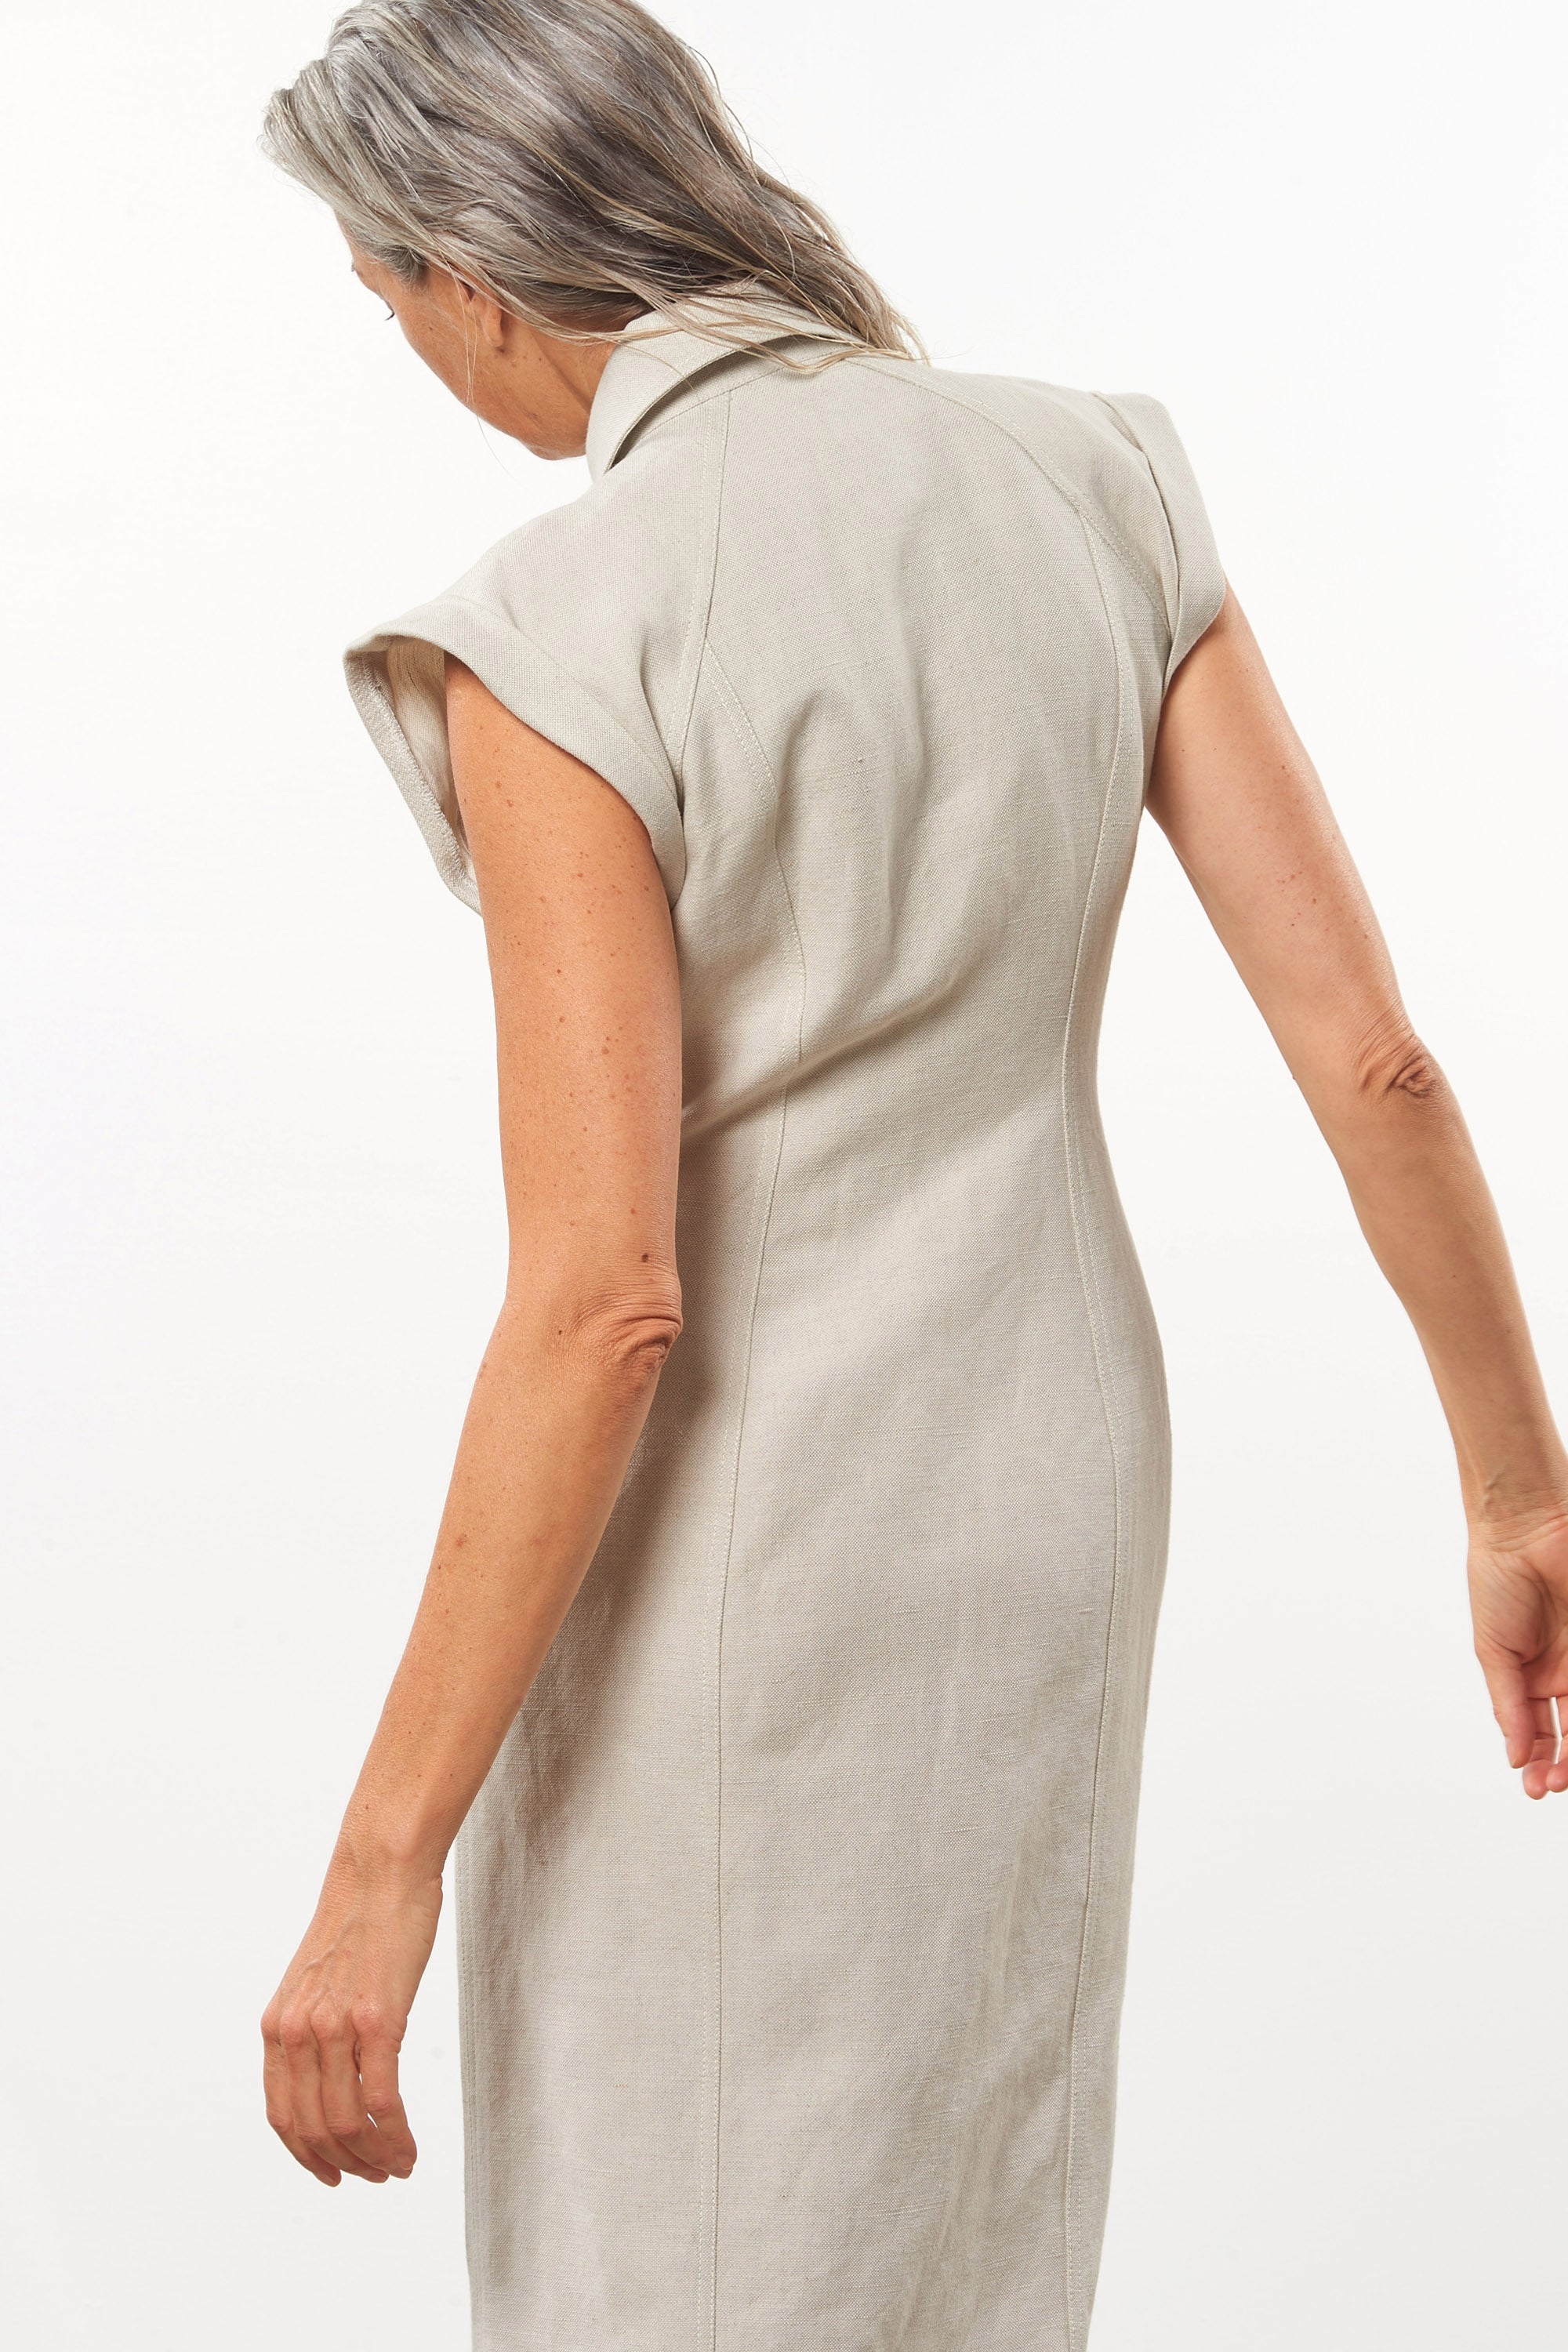 Mara Hoffman Beige Analia Dress in cotton and linen (back details)